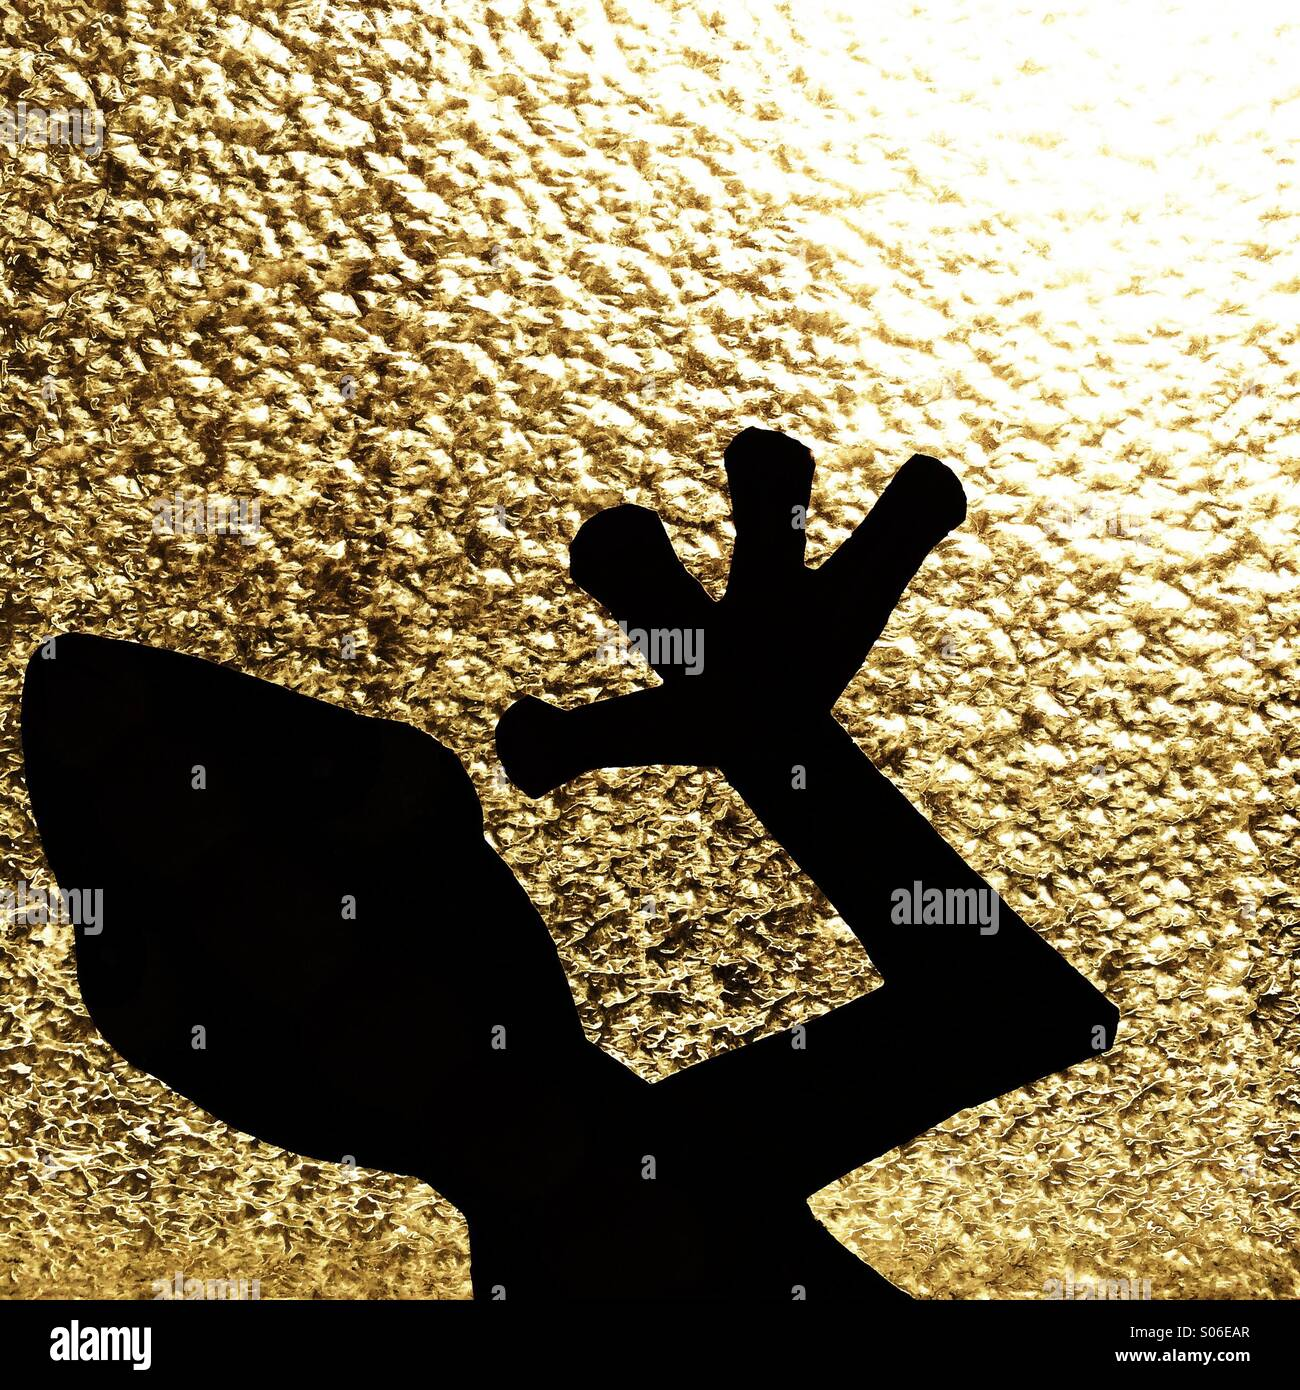 Gecko silhouette - Stock Image